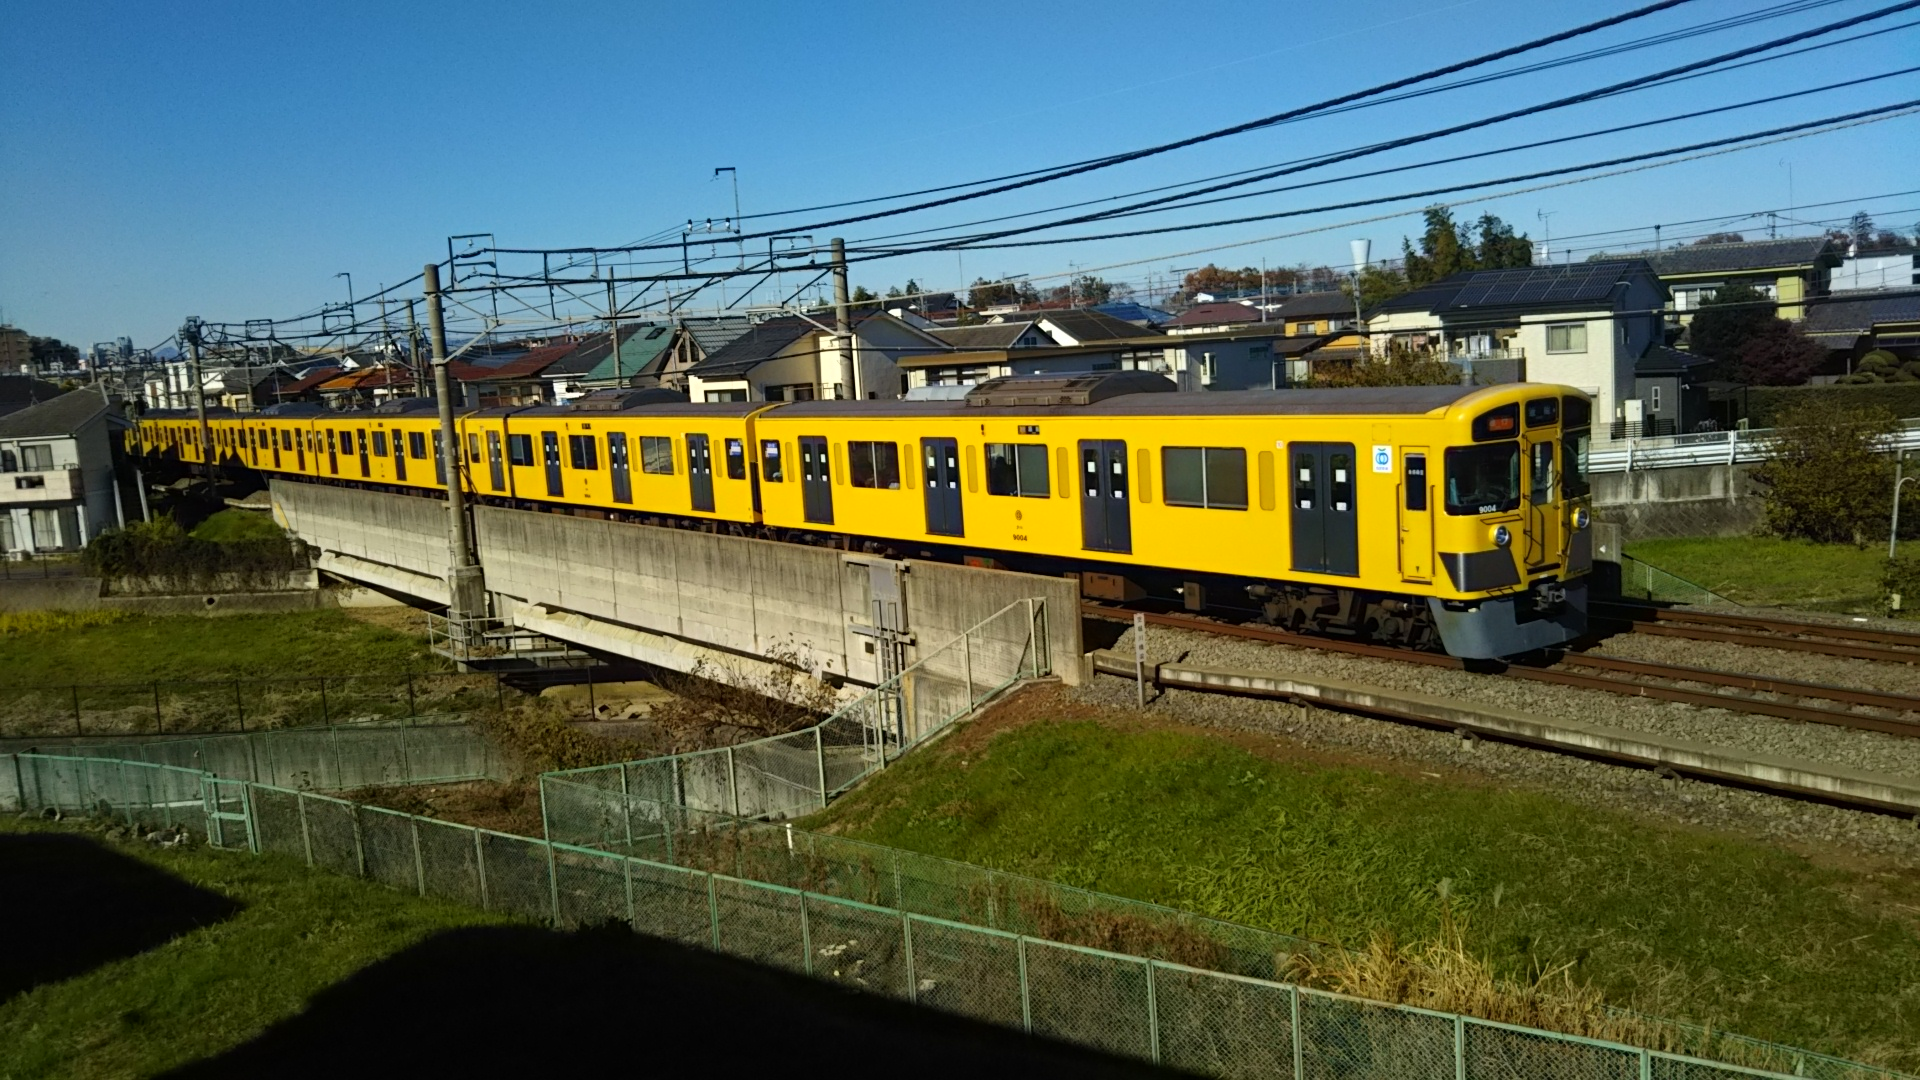 'Blue Sky and Yellow Train – taken on 8th Dec 2019 (青空と黄色い電車 - 2019年12月8日撮影)' by Ryo Fukyo (不協遼), 20